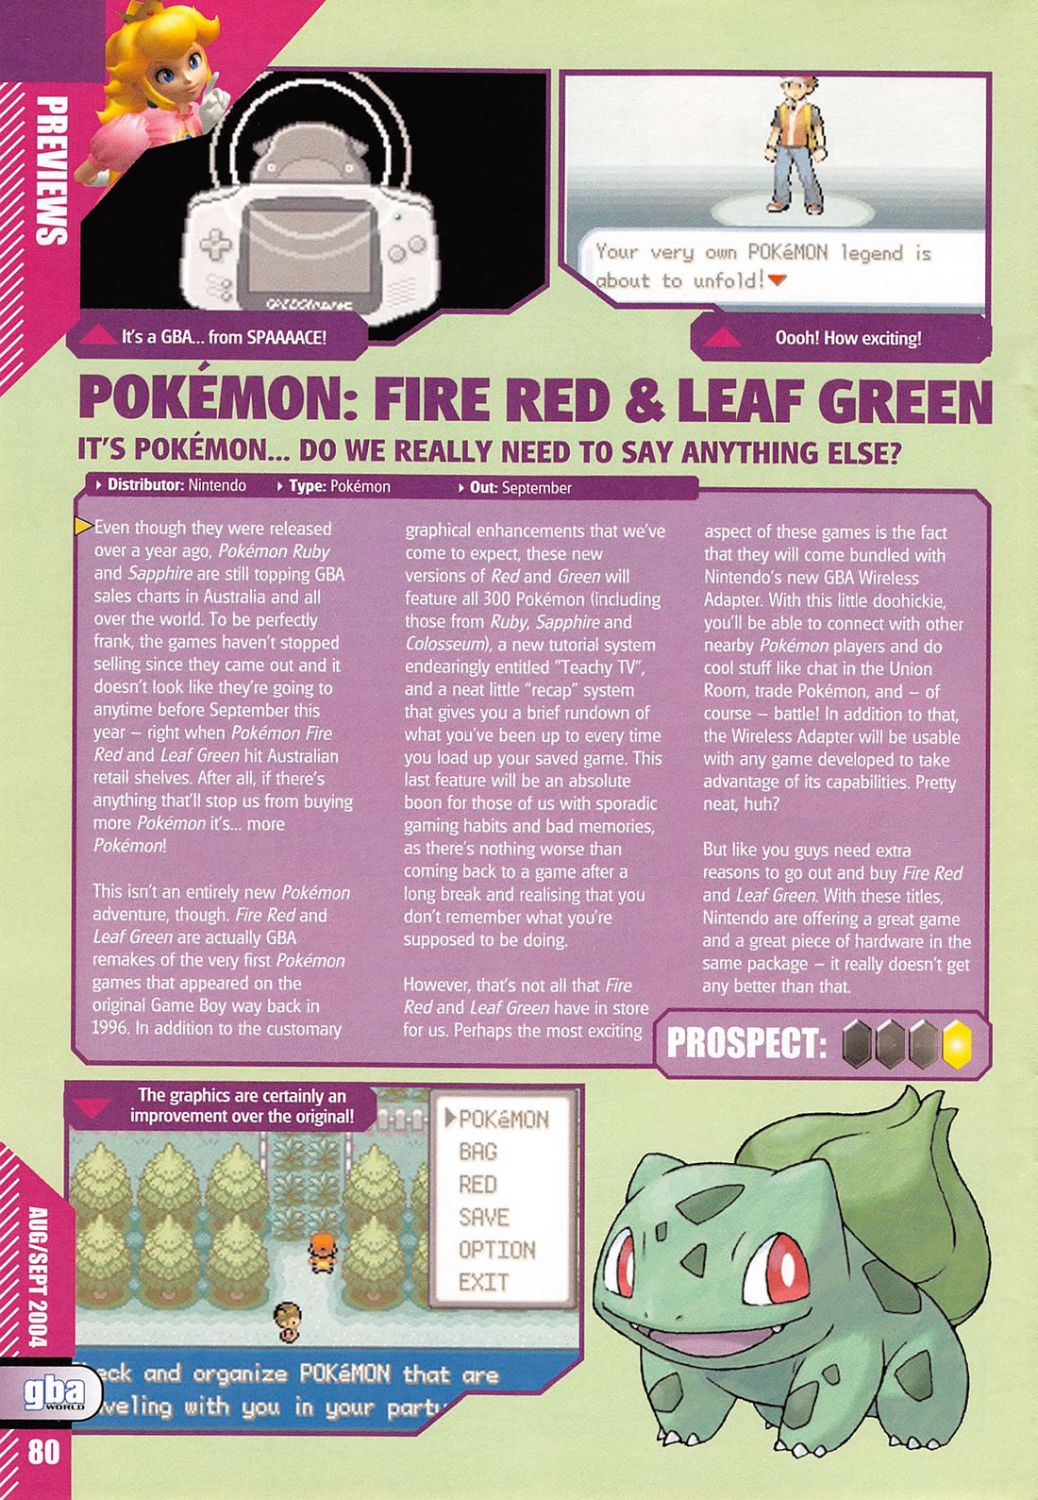 GBA World Issue 10 August 2004 Pokemon FireRed LeafGreen Preview PG1